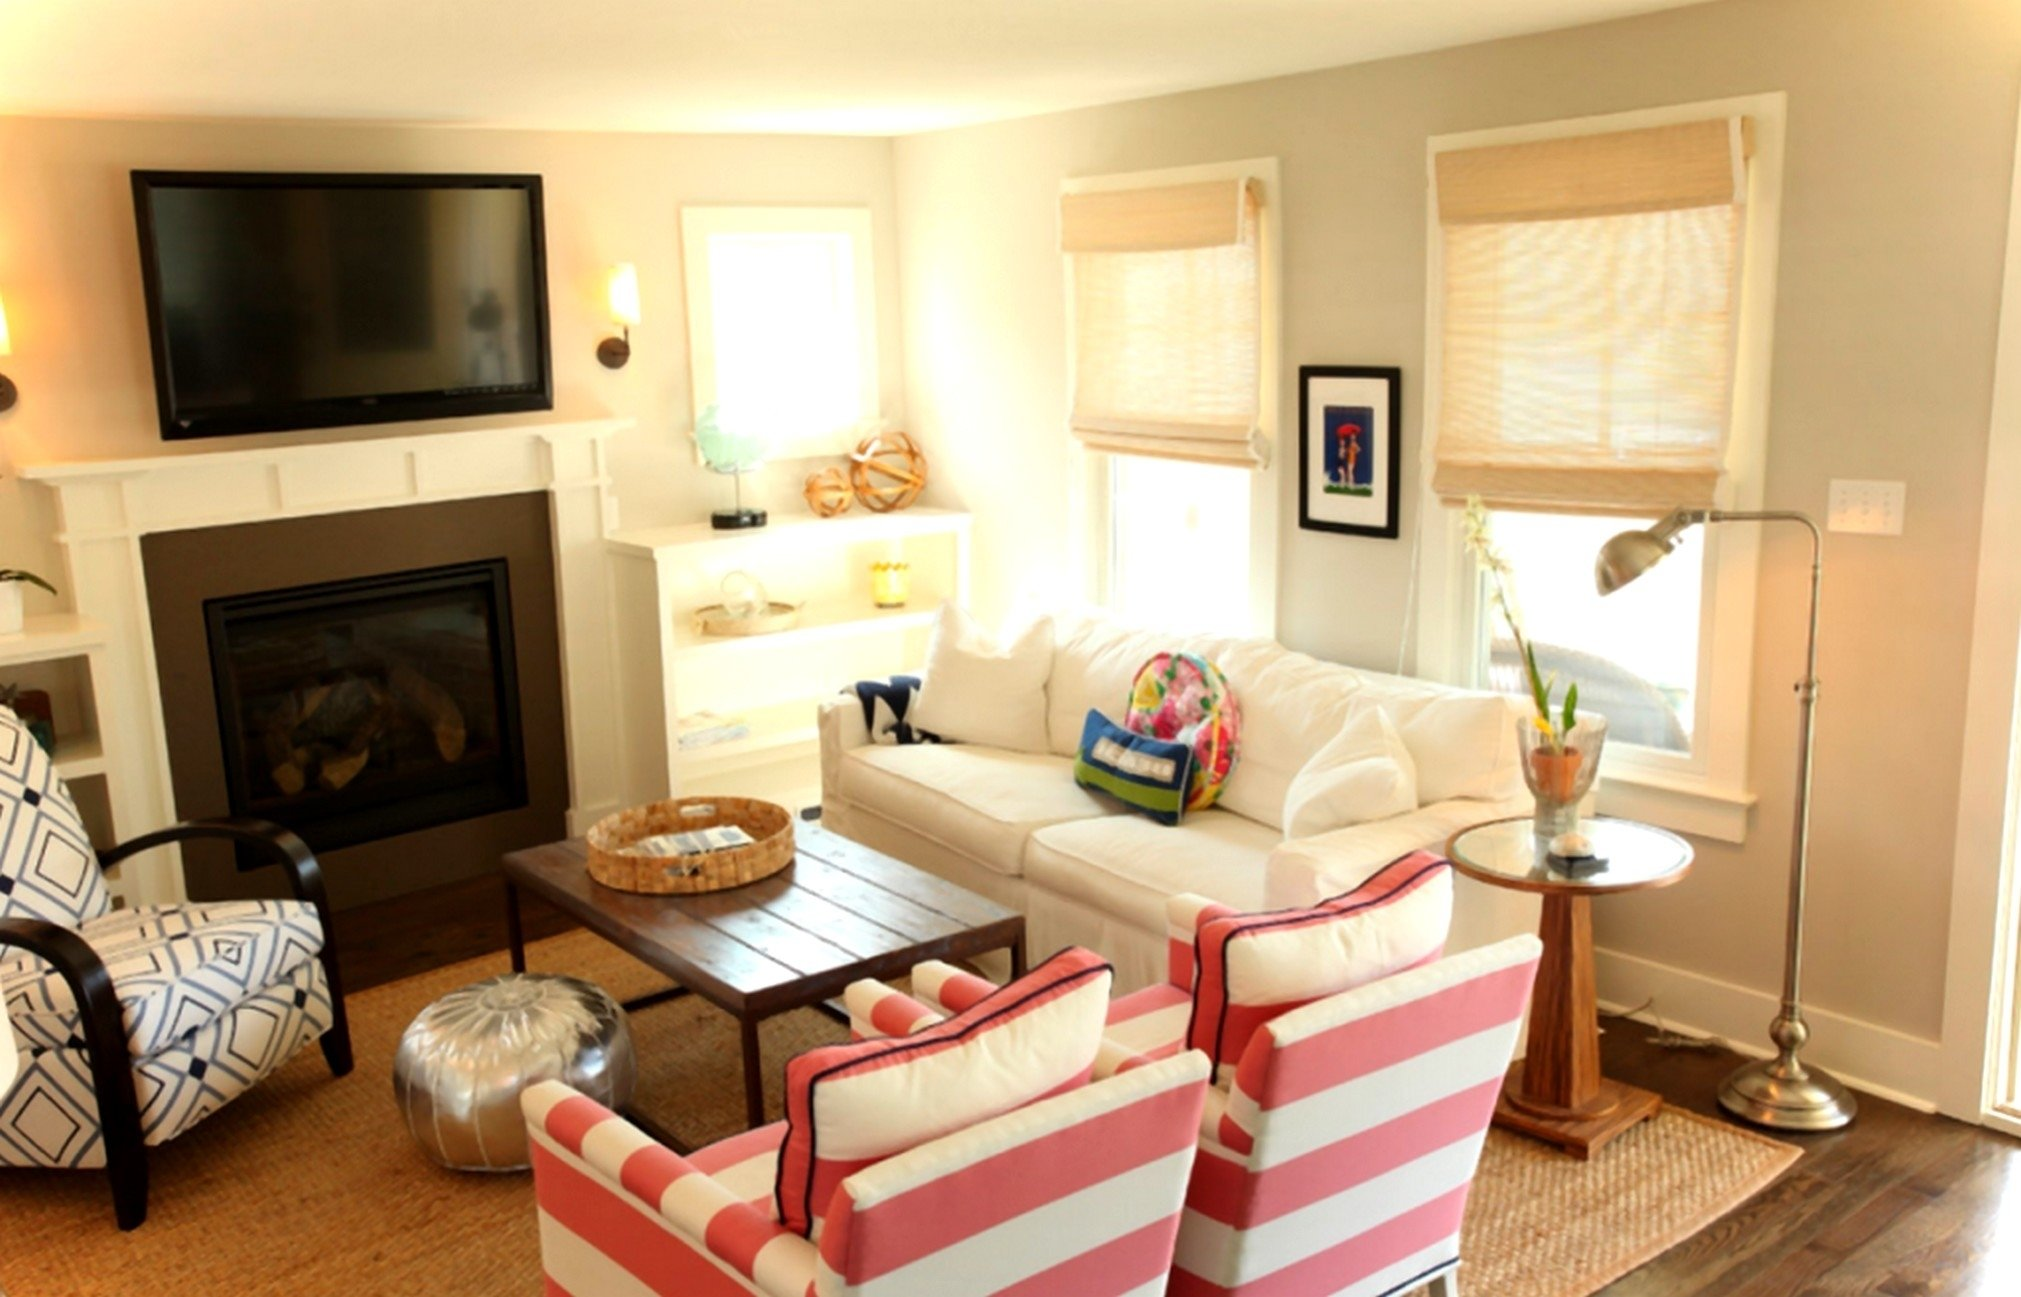 10 Fabulous Small Living Room Ideas With Fireplace living room living room designs with fireplace living room cute 2020